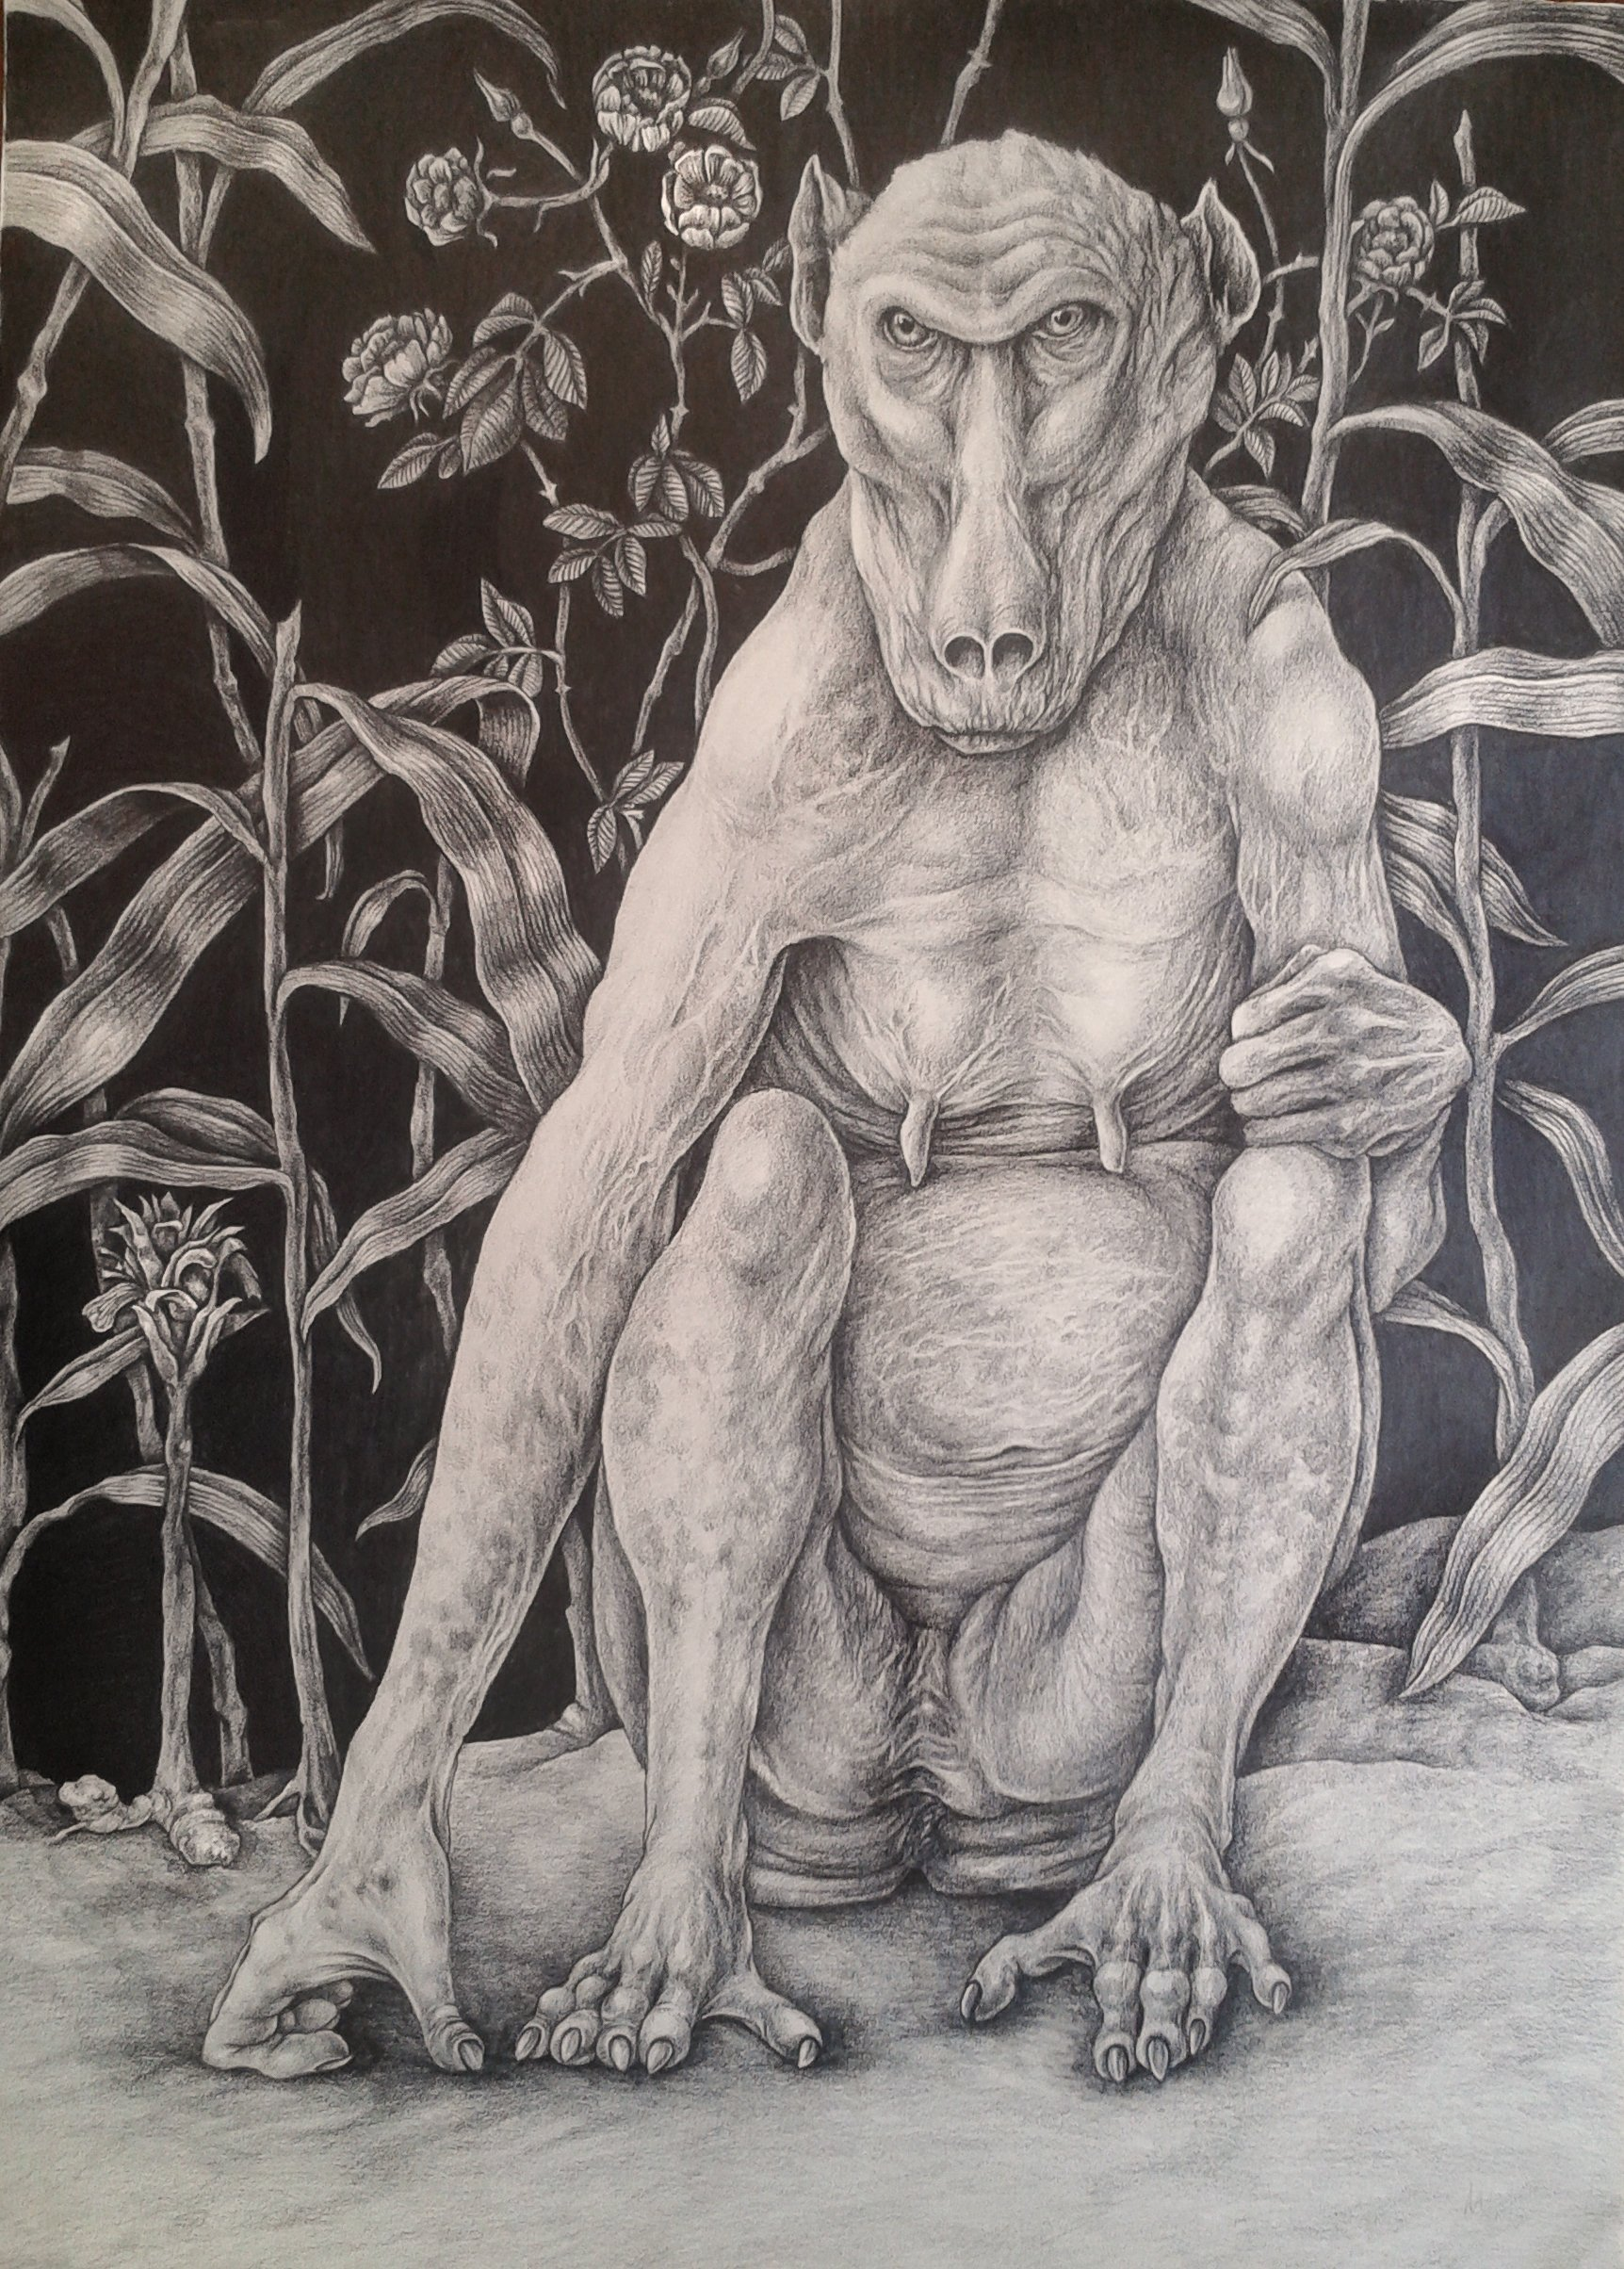 Baboon with roses and gingerplants